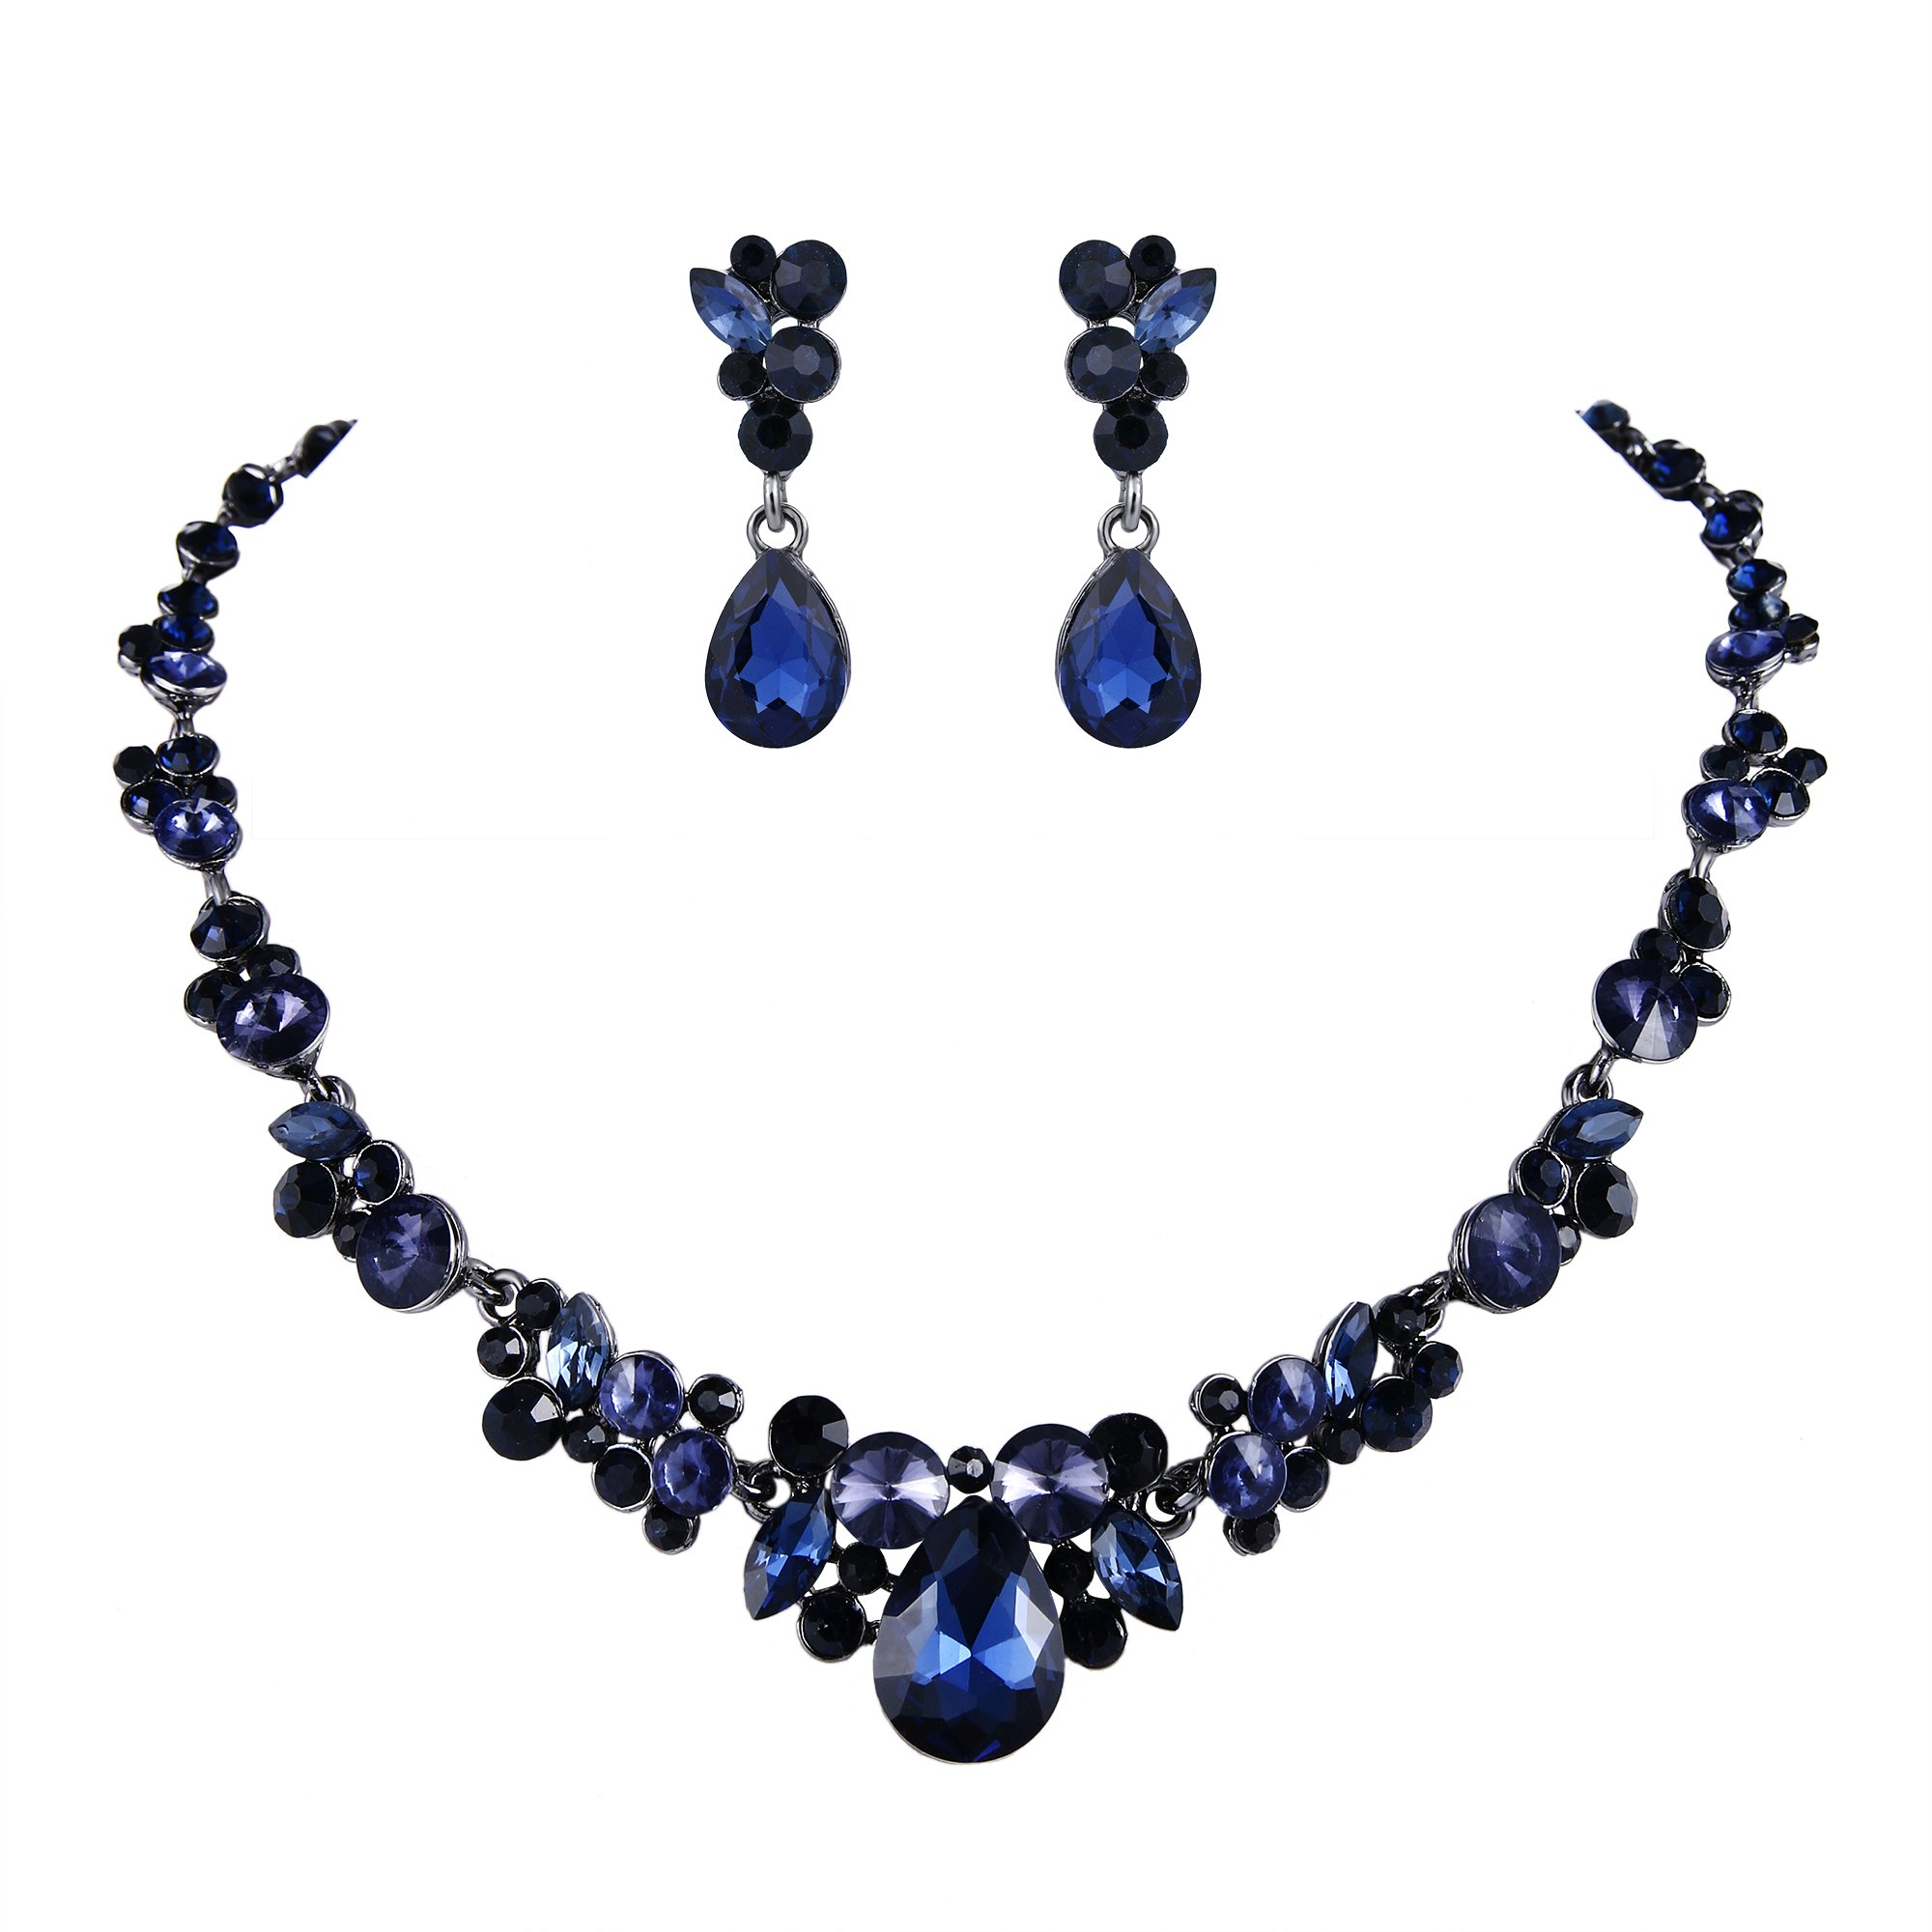 EVER FAITH Rhinestone Crystal Bridal Floral Teardrop Necklace Earrings Set Sapphire Color Black-Tone